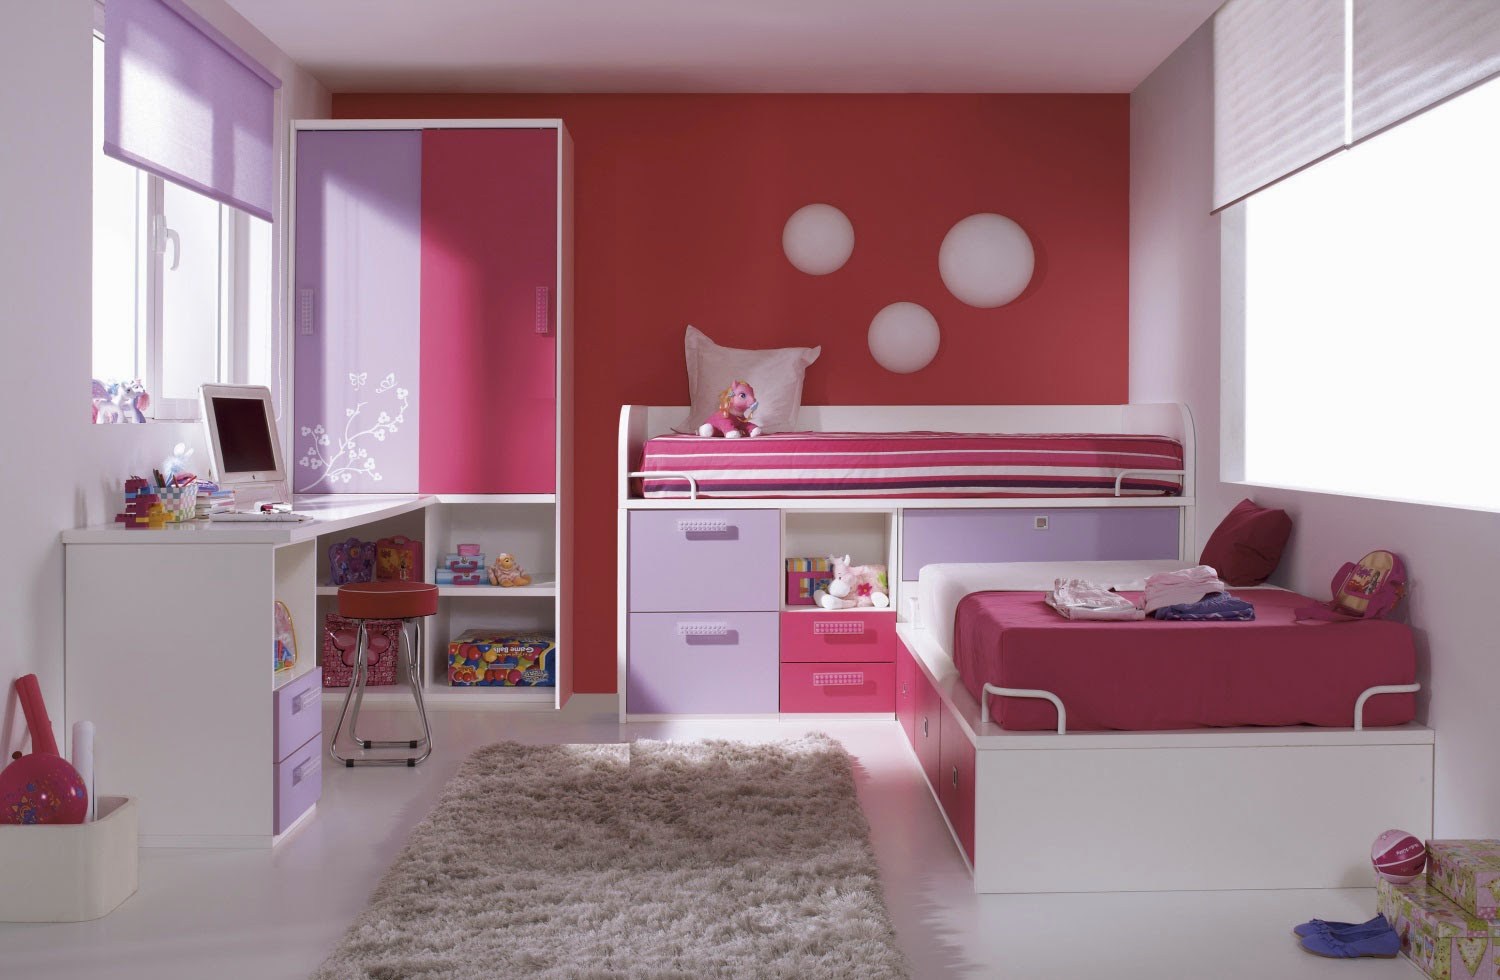 Room-Bedroom-Minimalist-Child-Beautiful-Furniture-Children